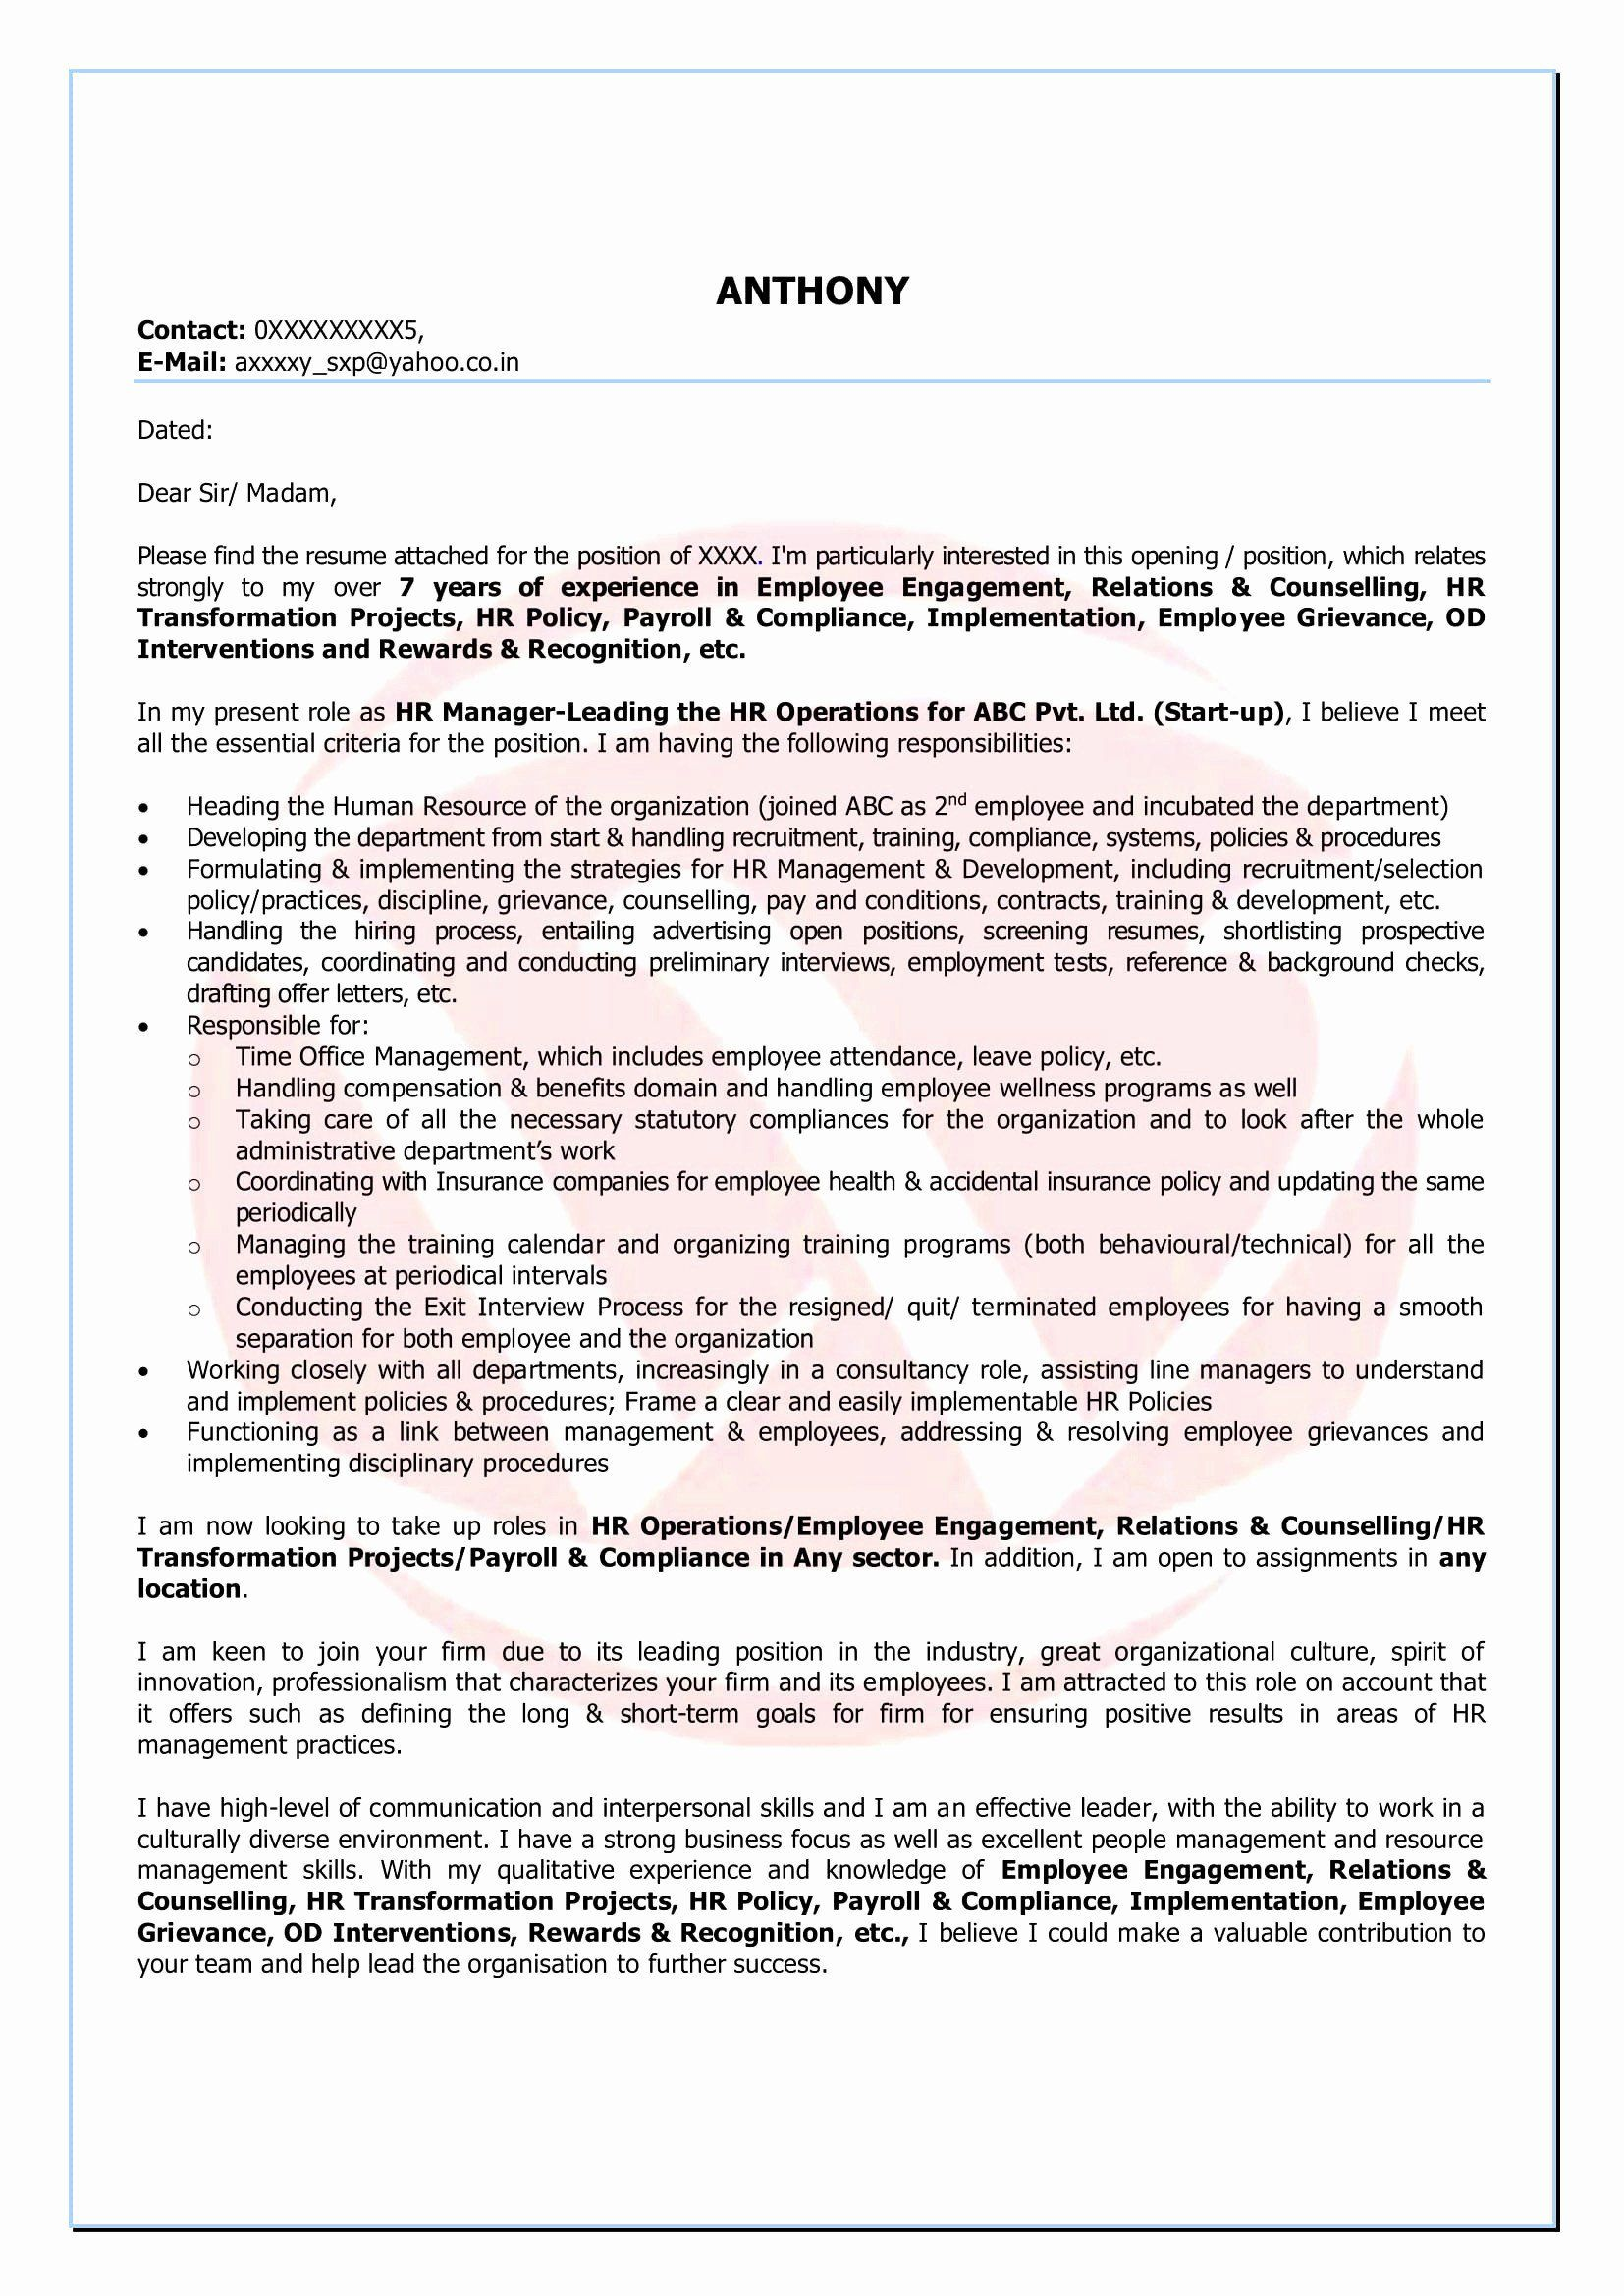 Sales Resume Examples 2017 Trade Cover Letter Examples in